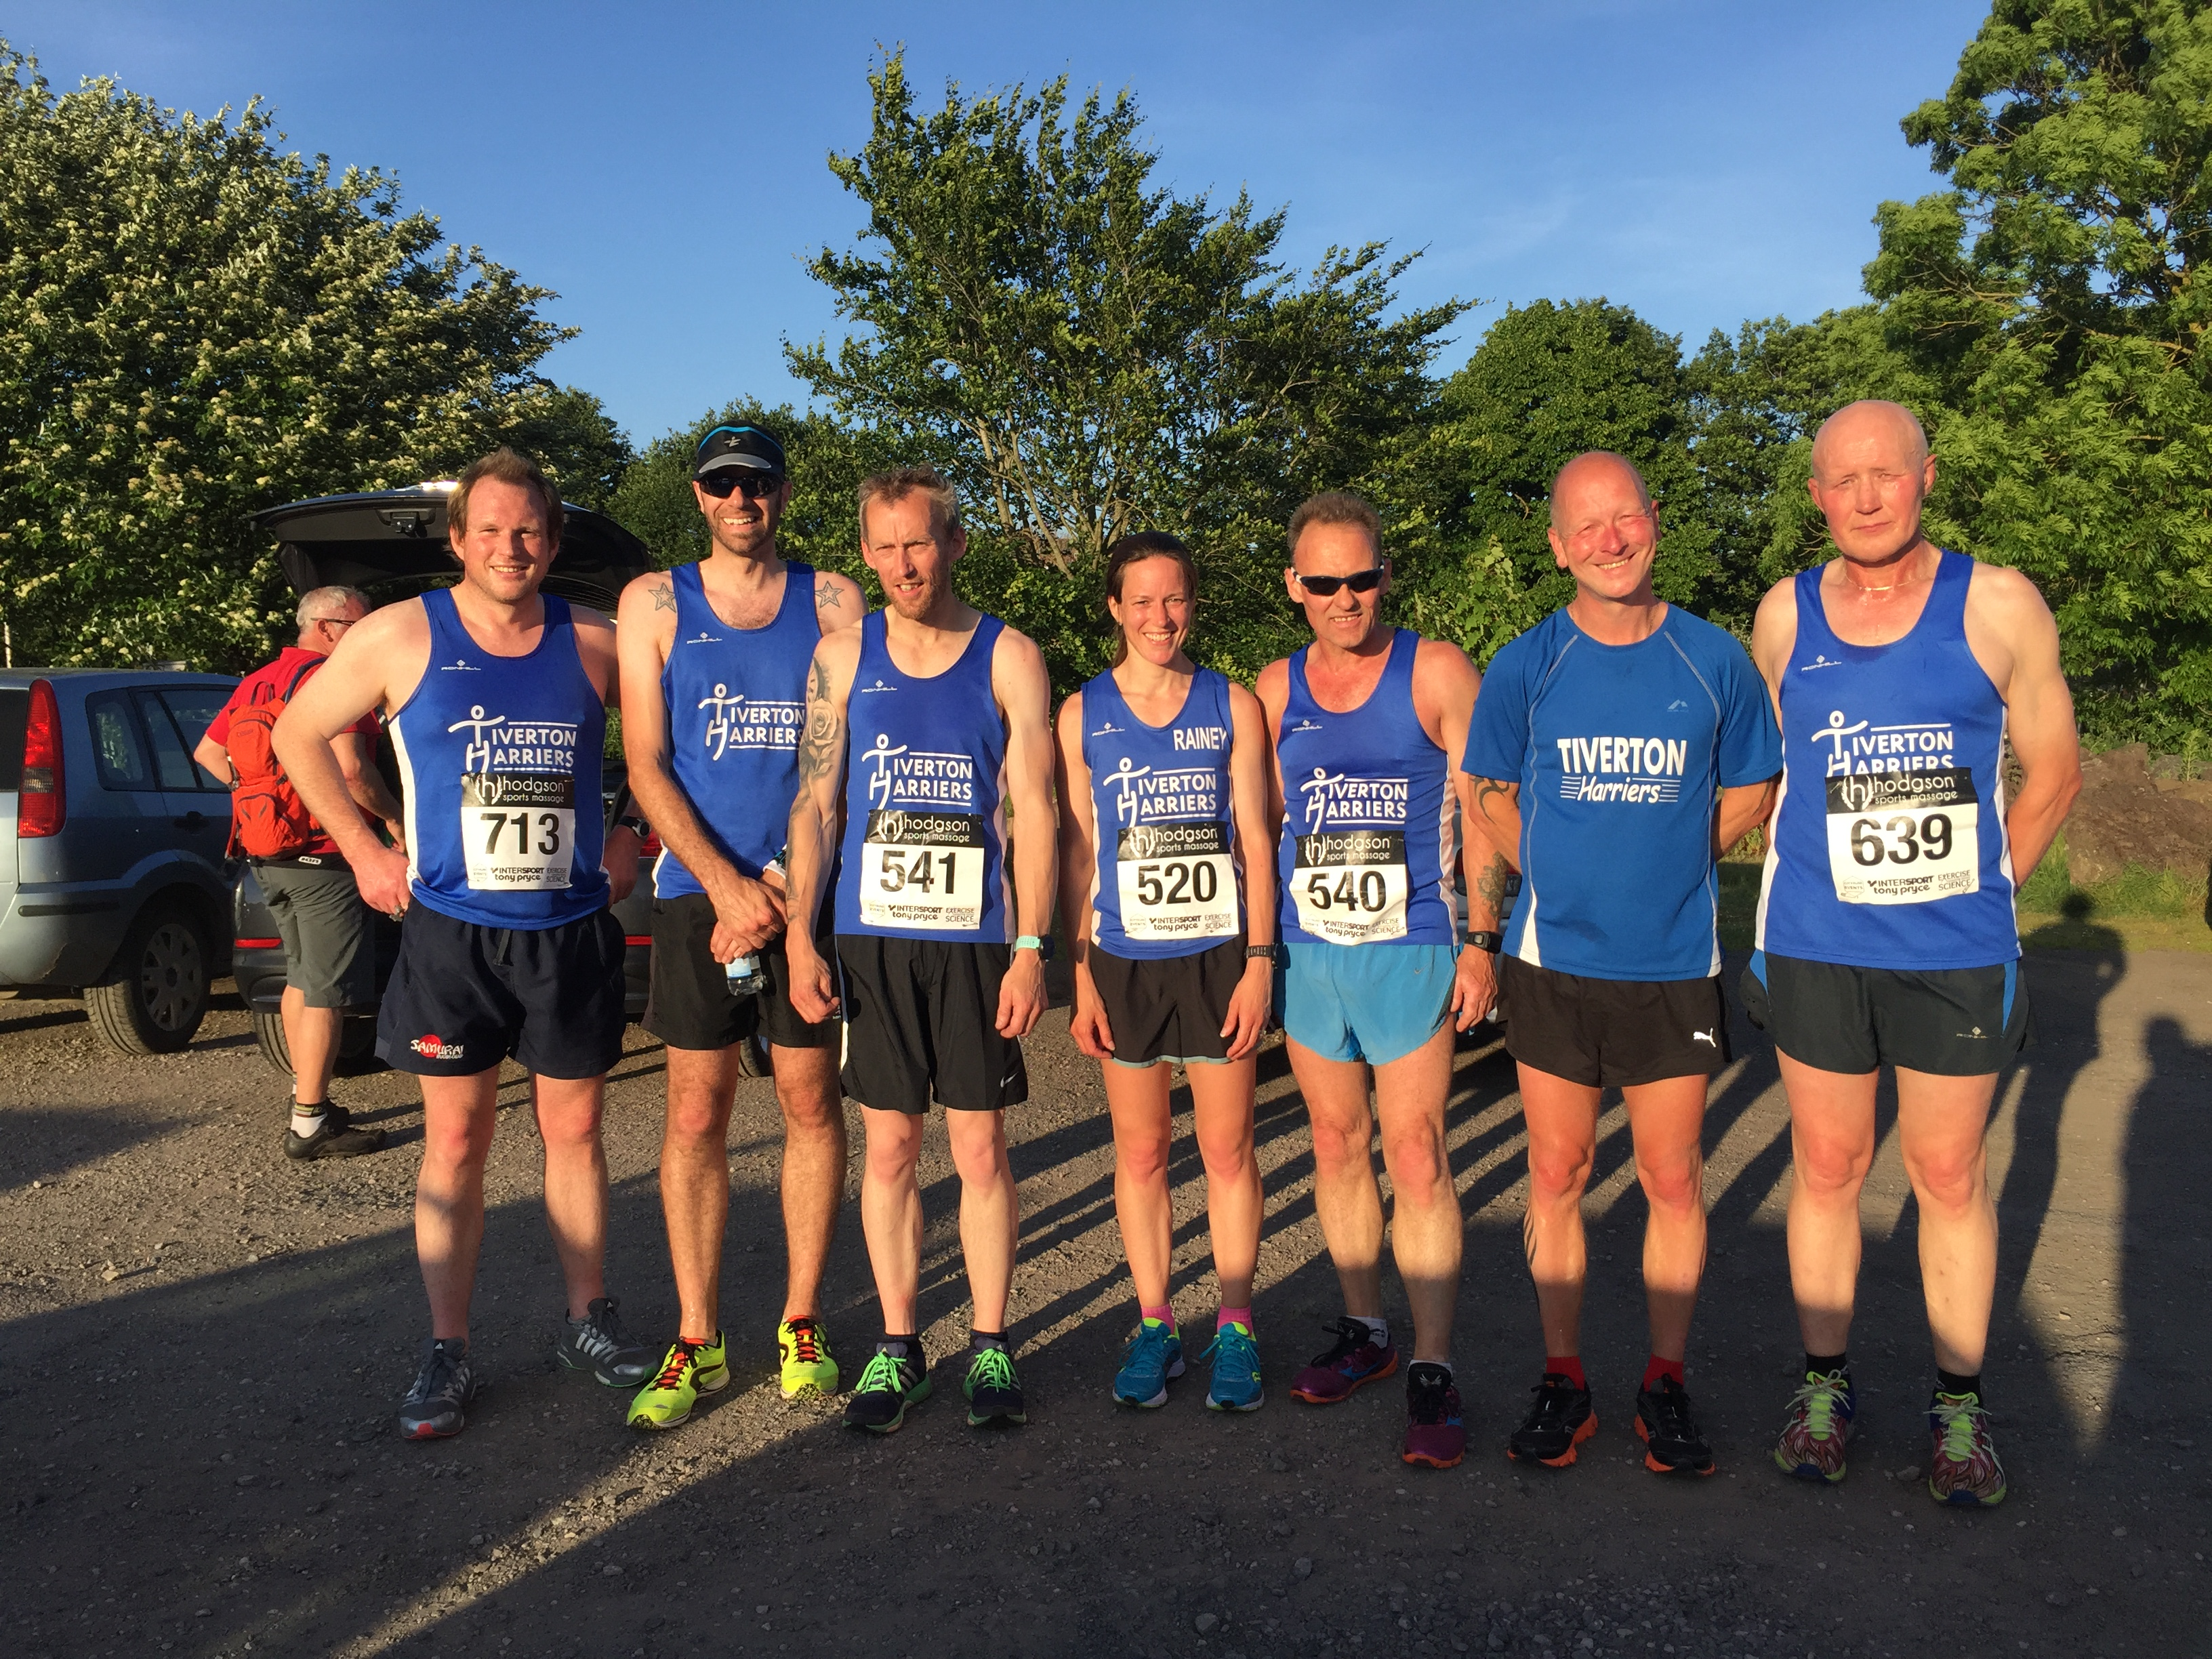 Tiverton Harriers on Strava